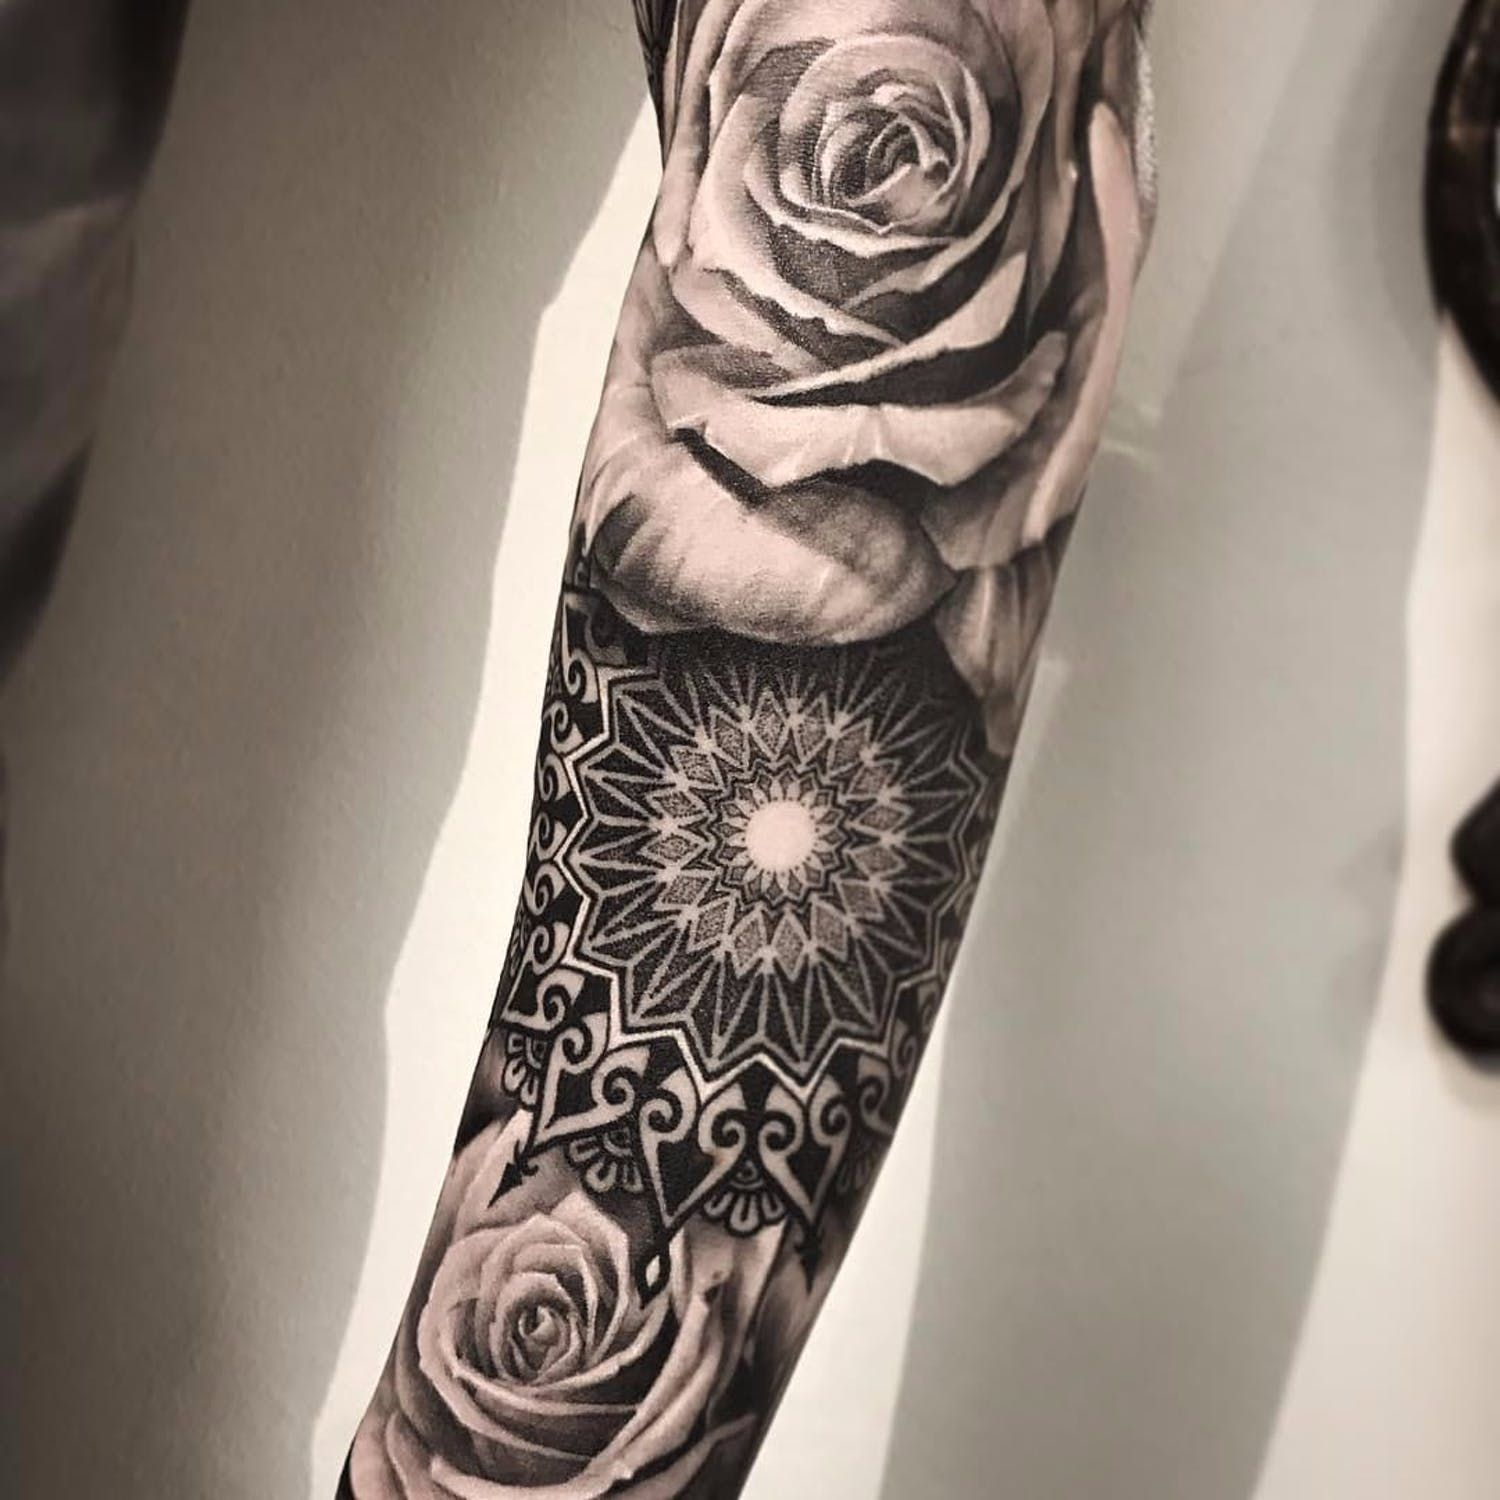 Realism And Ornamental By Andy Blanco Andyblanco Blackandgrey Realism Realistic Hyp Geometric Rose Tattoo Geometric Realism Tattoo Realistic Flower Tattoo